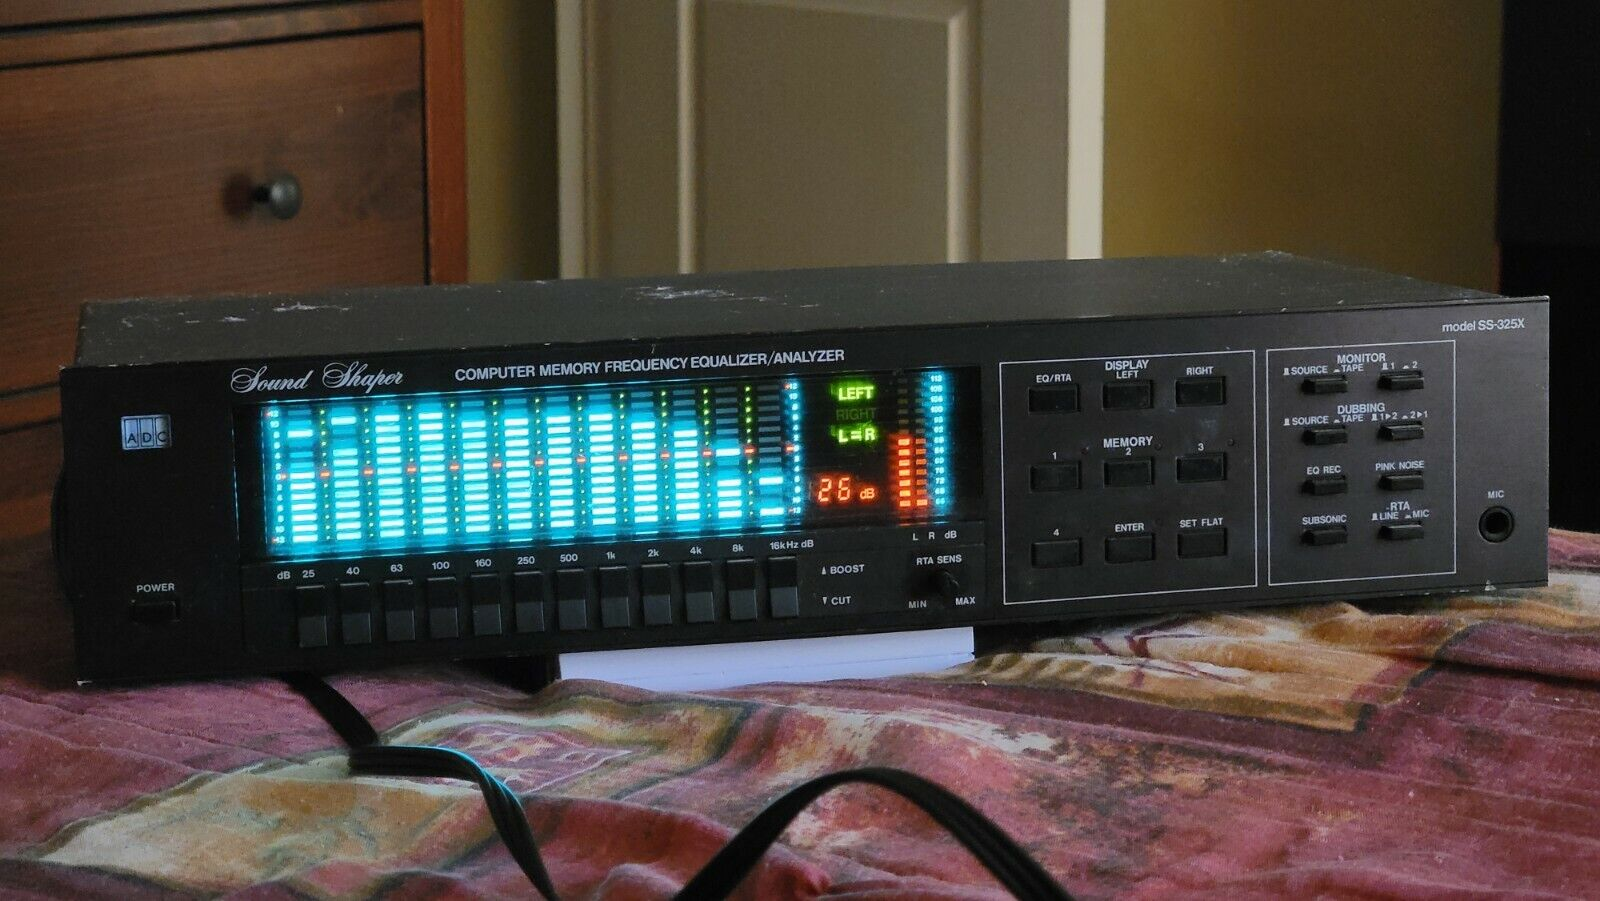 VINTAGE ADC SS-325X SOUND SHAPER COMPUTER MEMORY Equalizer Spectrum Analyzer. Buy it now for 339.00